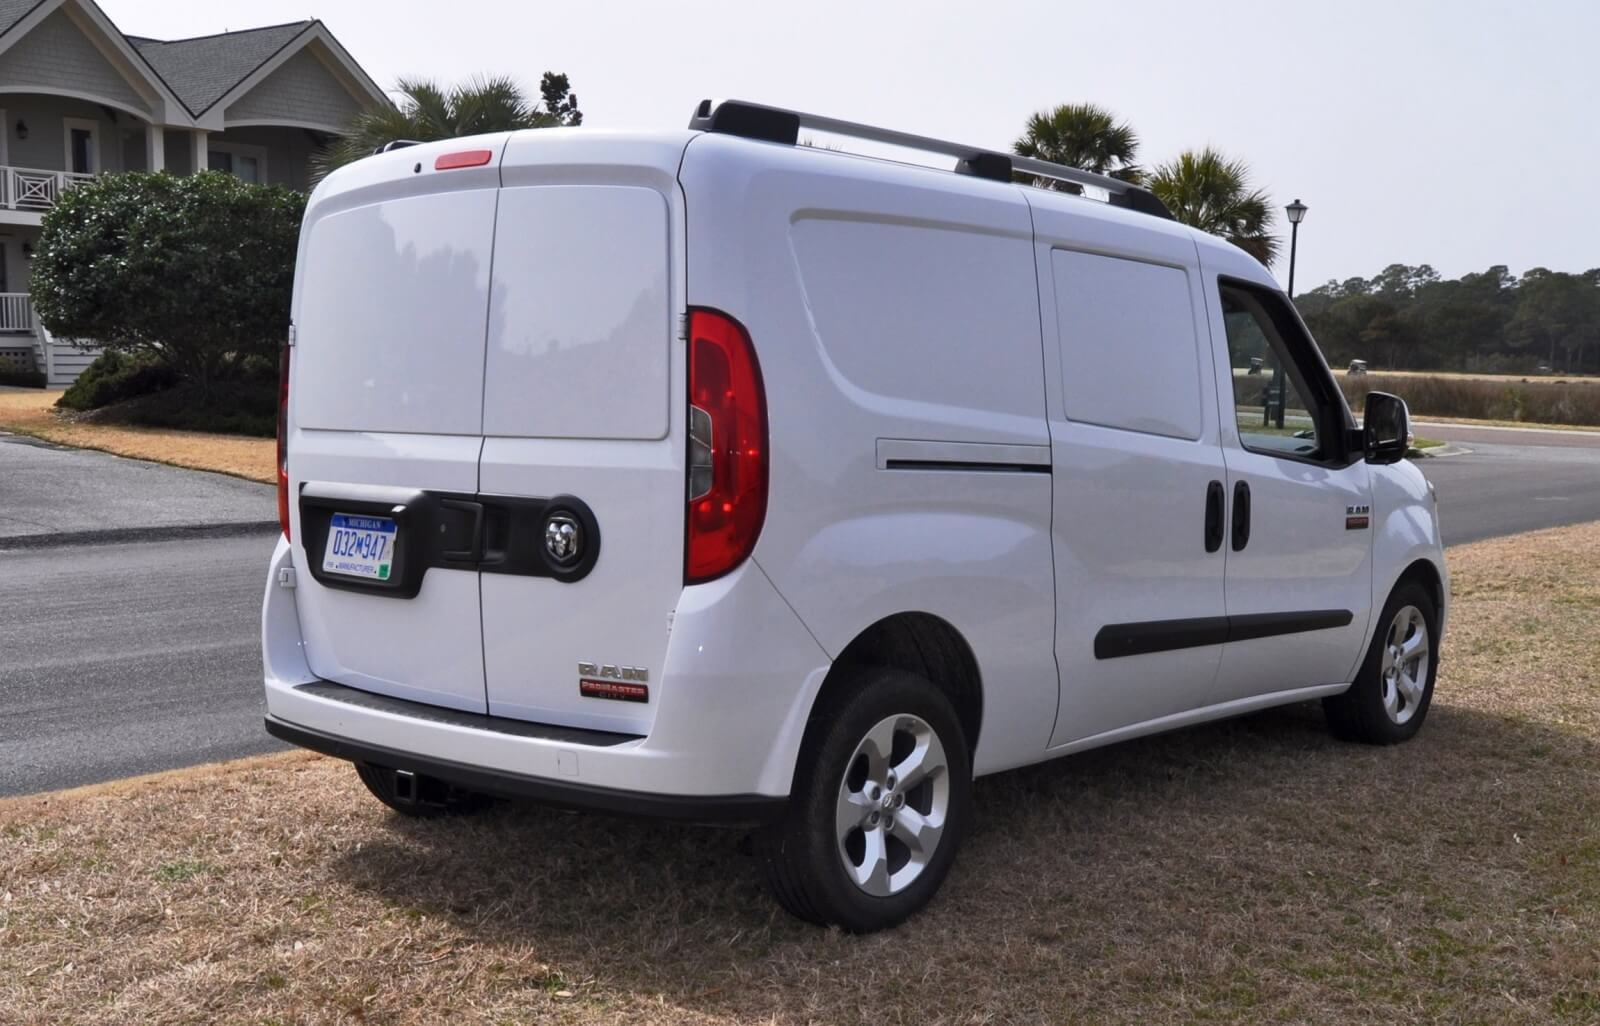 2015 ram promaster city review. Black Bedroom Furniture Sets. Home Design Ideas